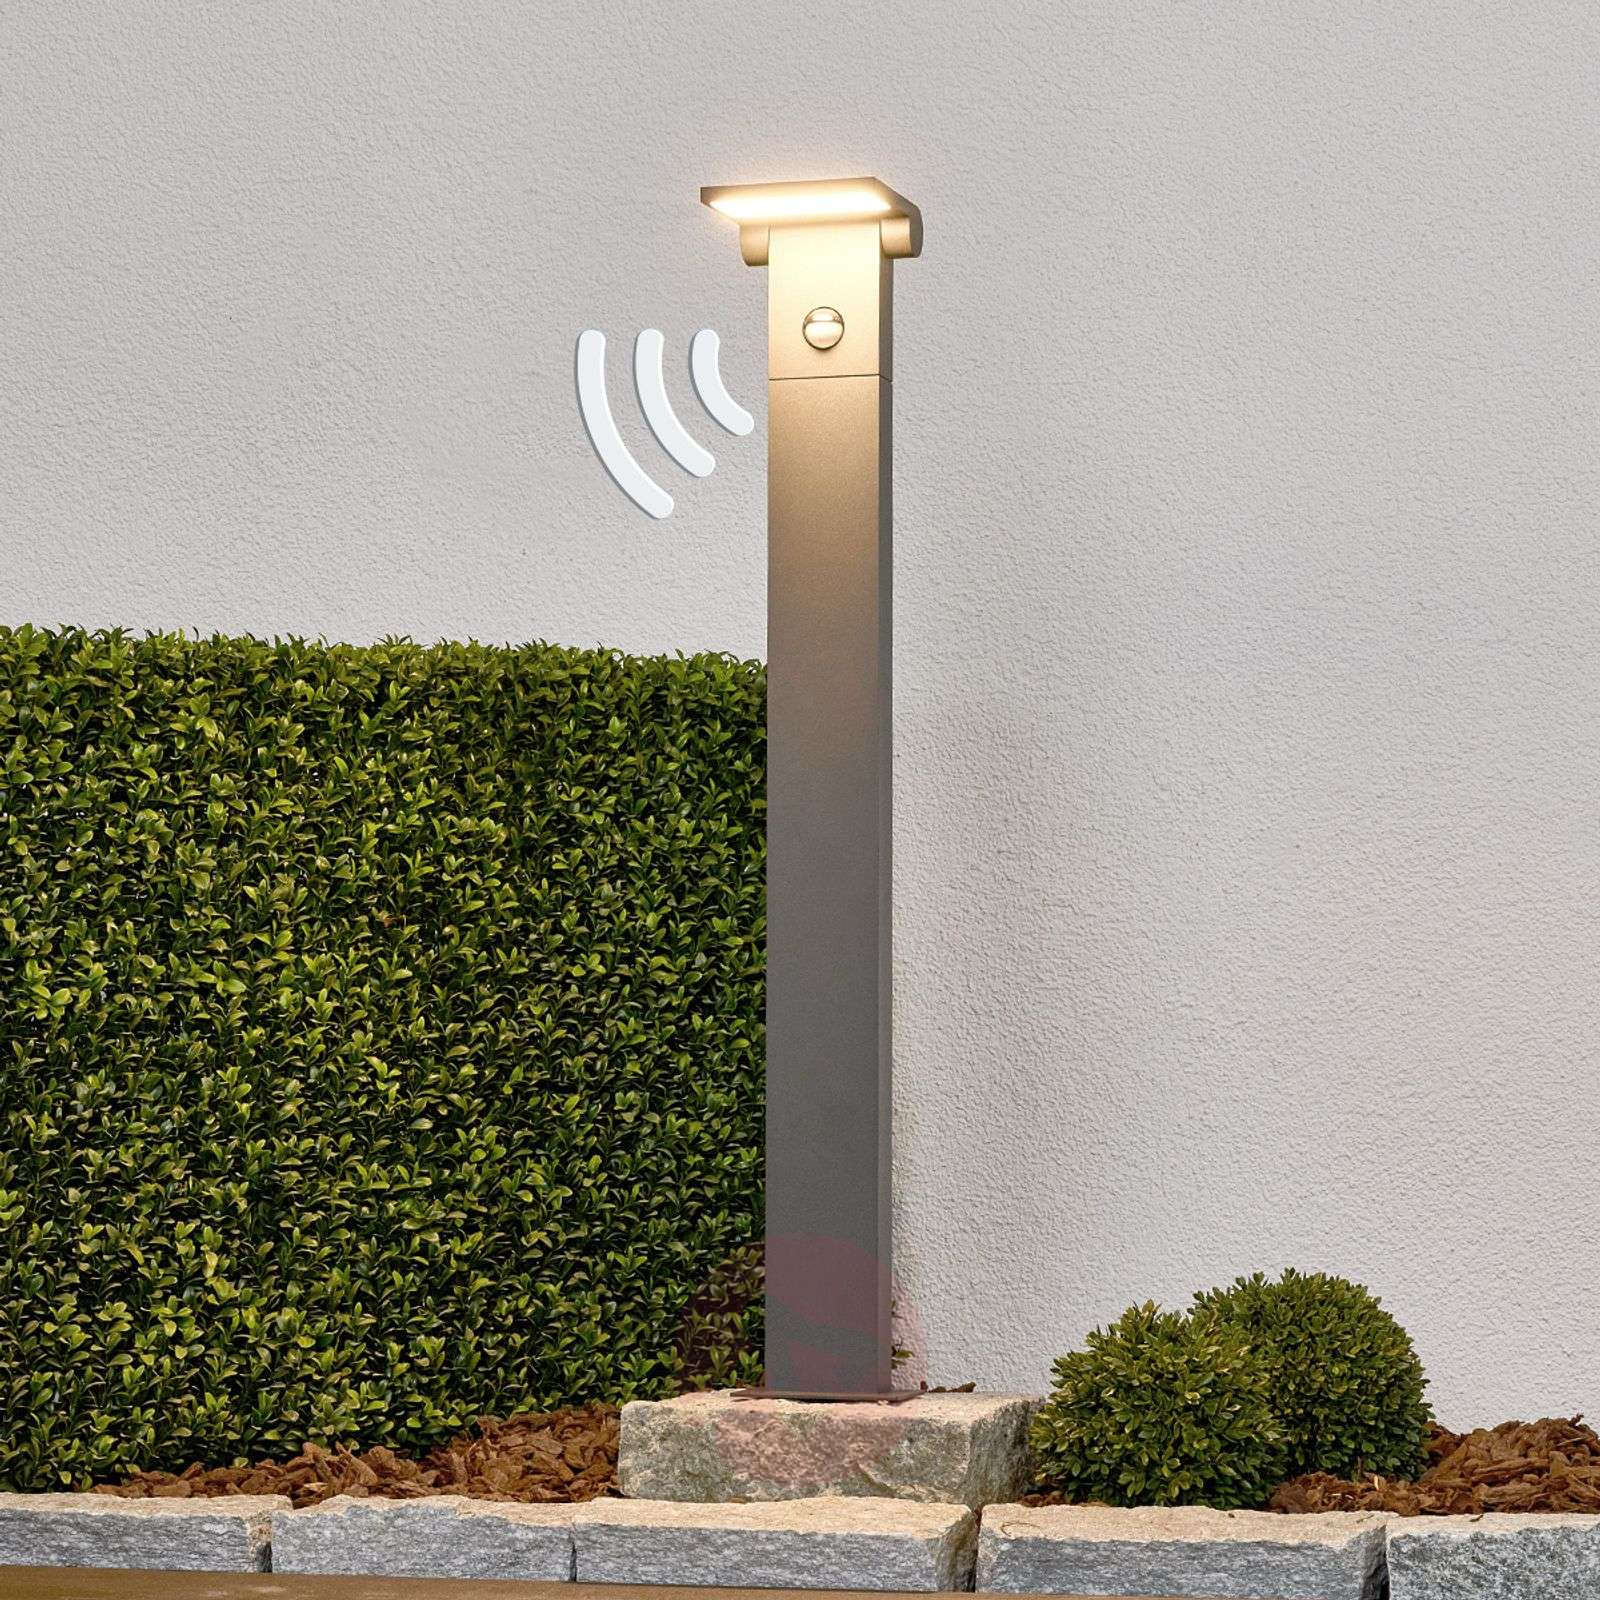 Bollard light Marius with motion detector, 80 cm-9619080-02